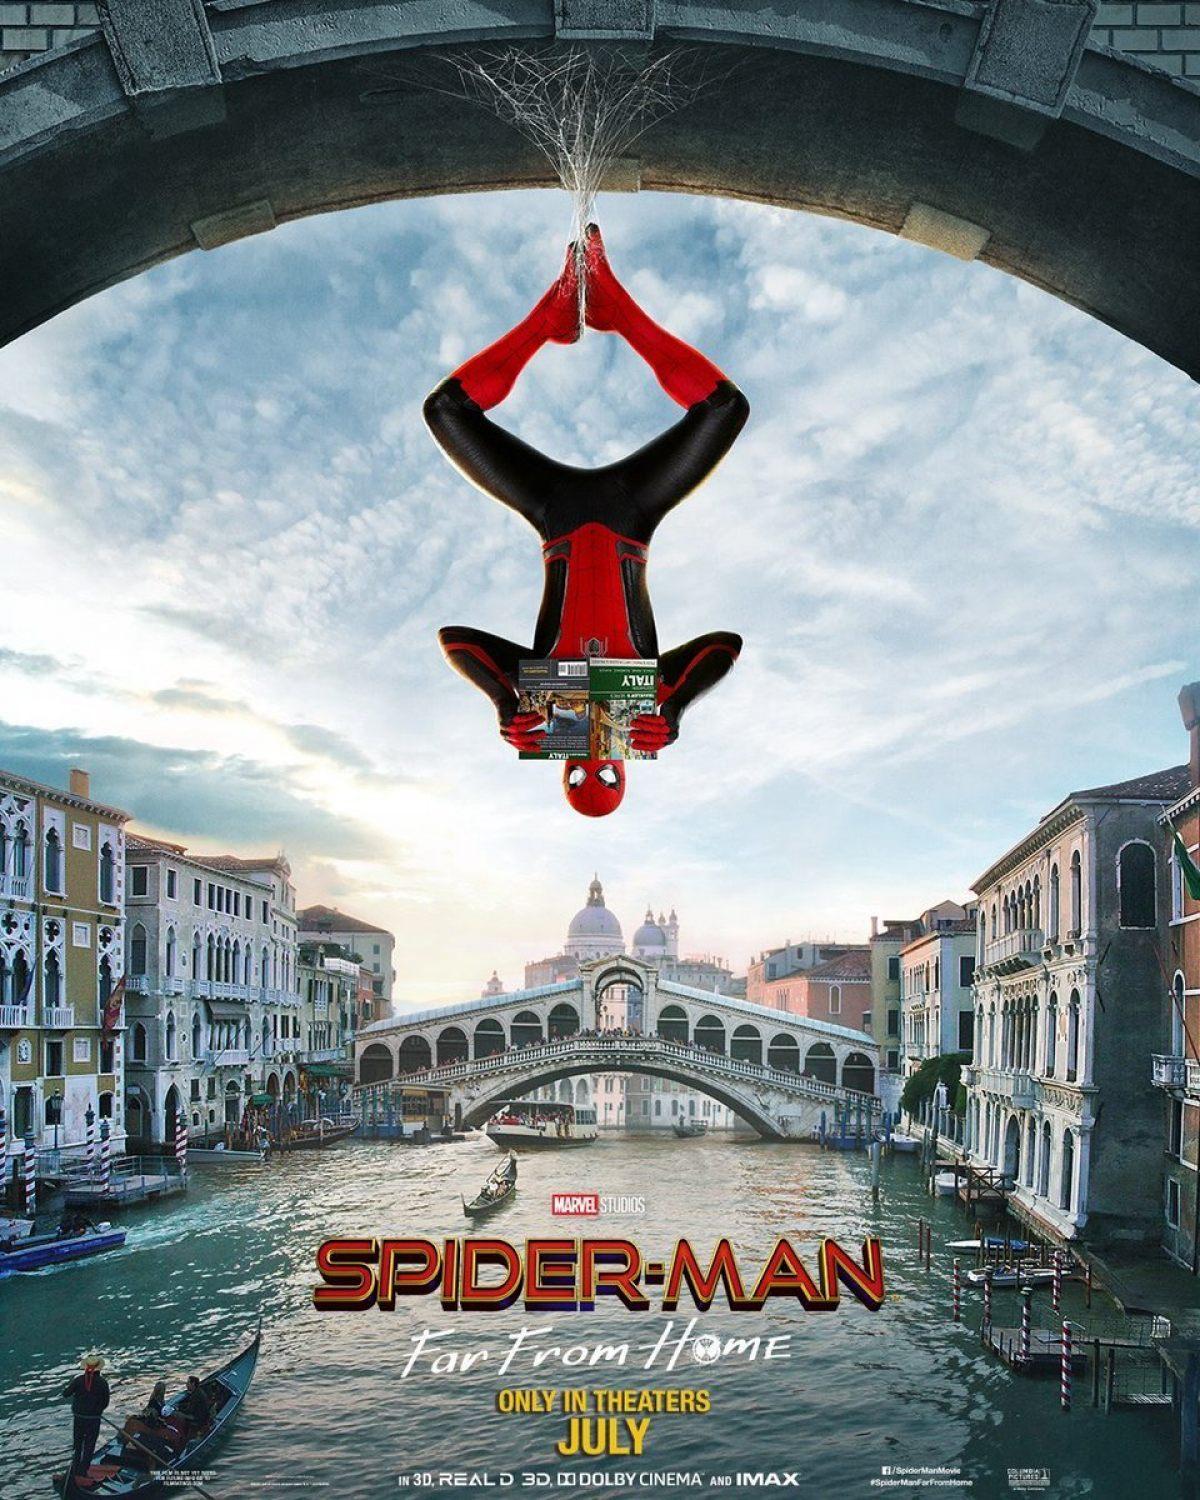 Spider-Man: Far From Home Posters Introduce New Look For Spidey